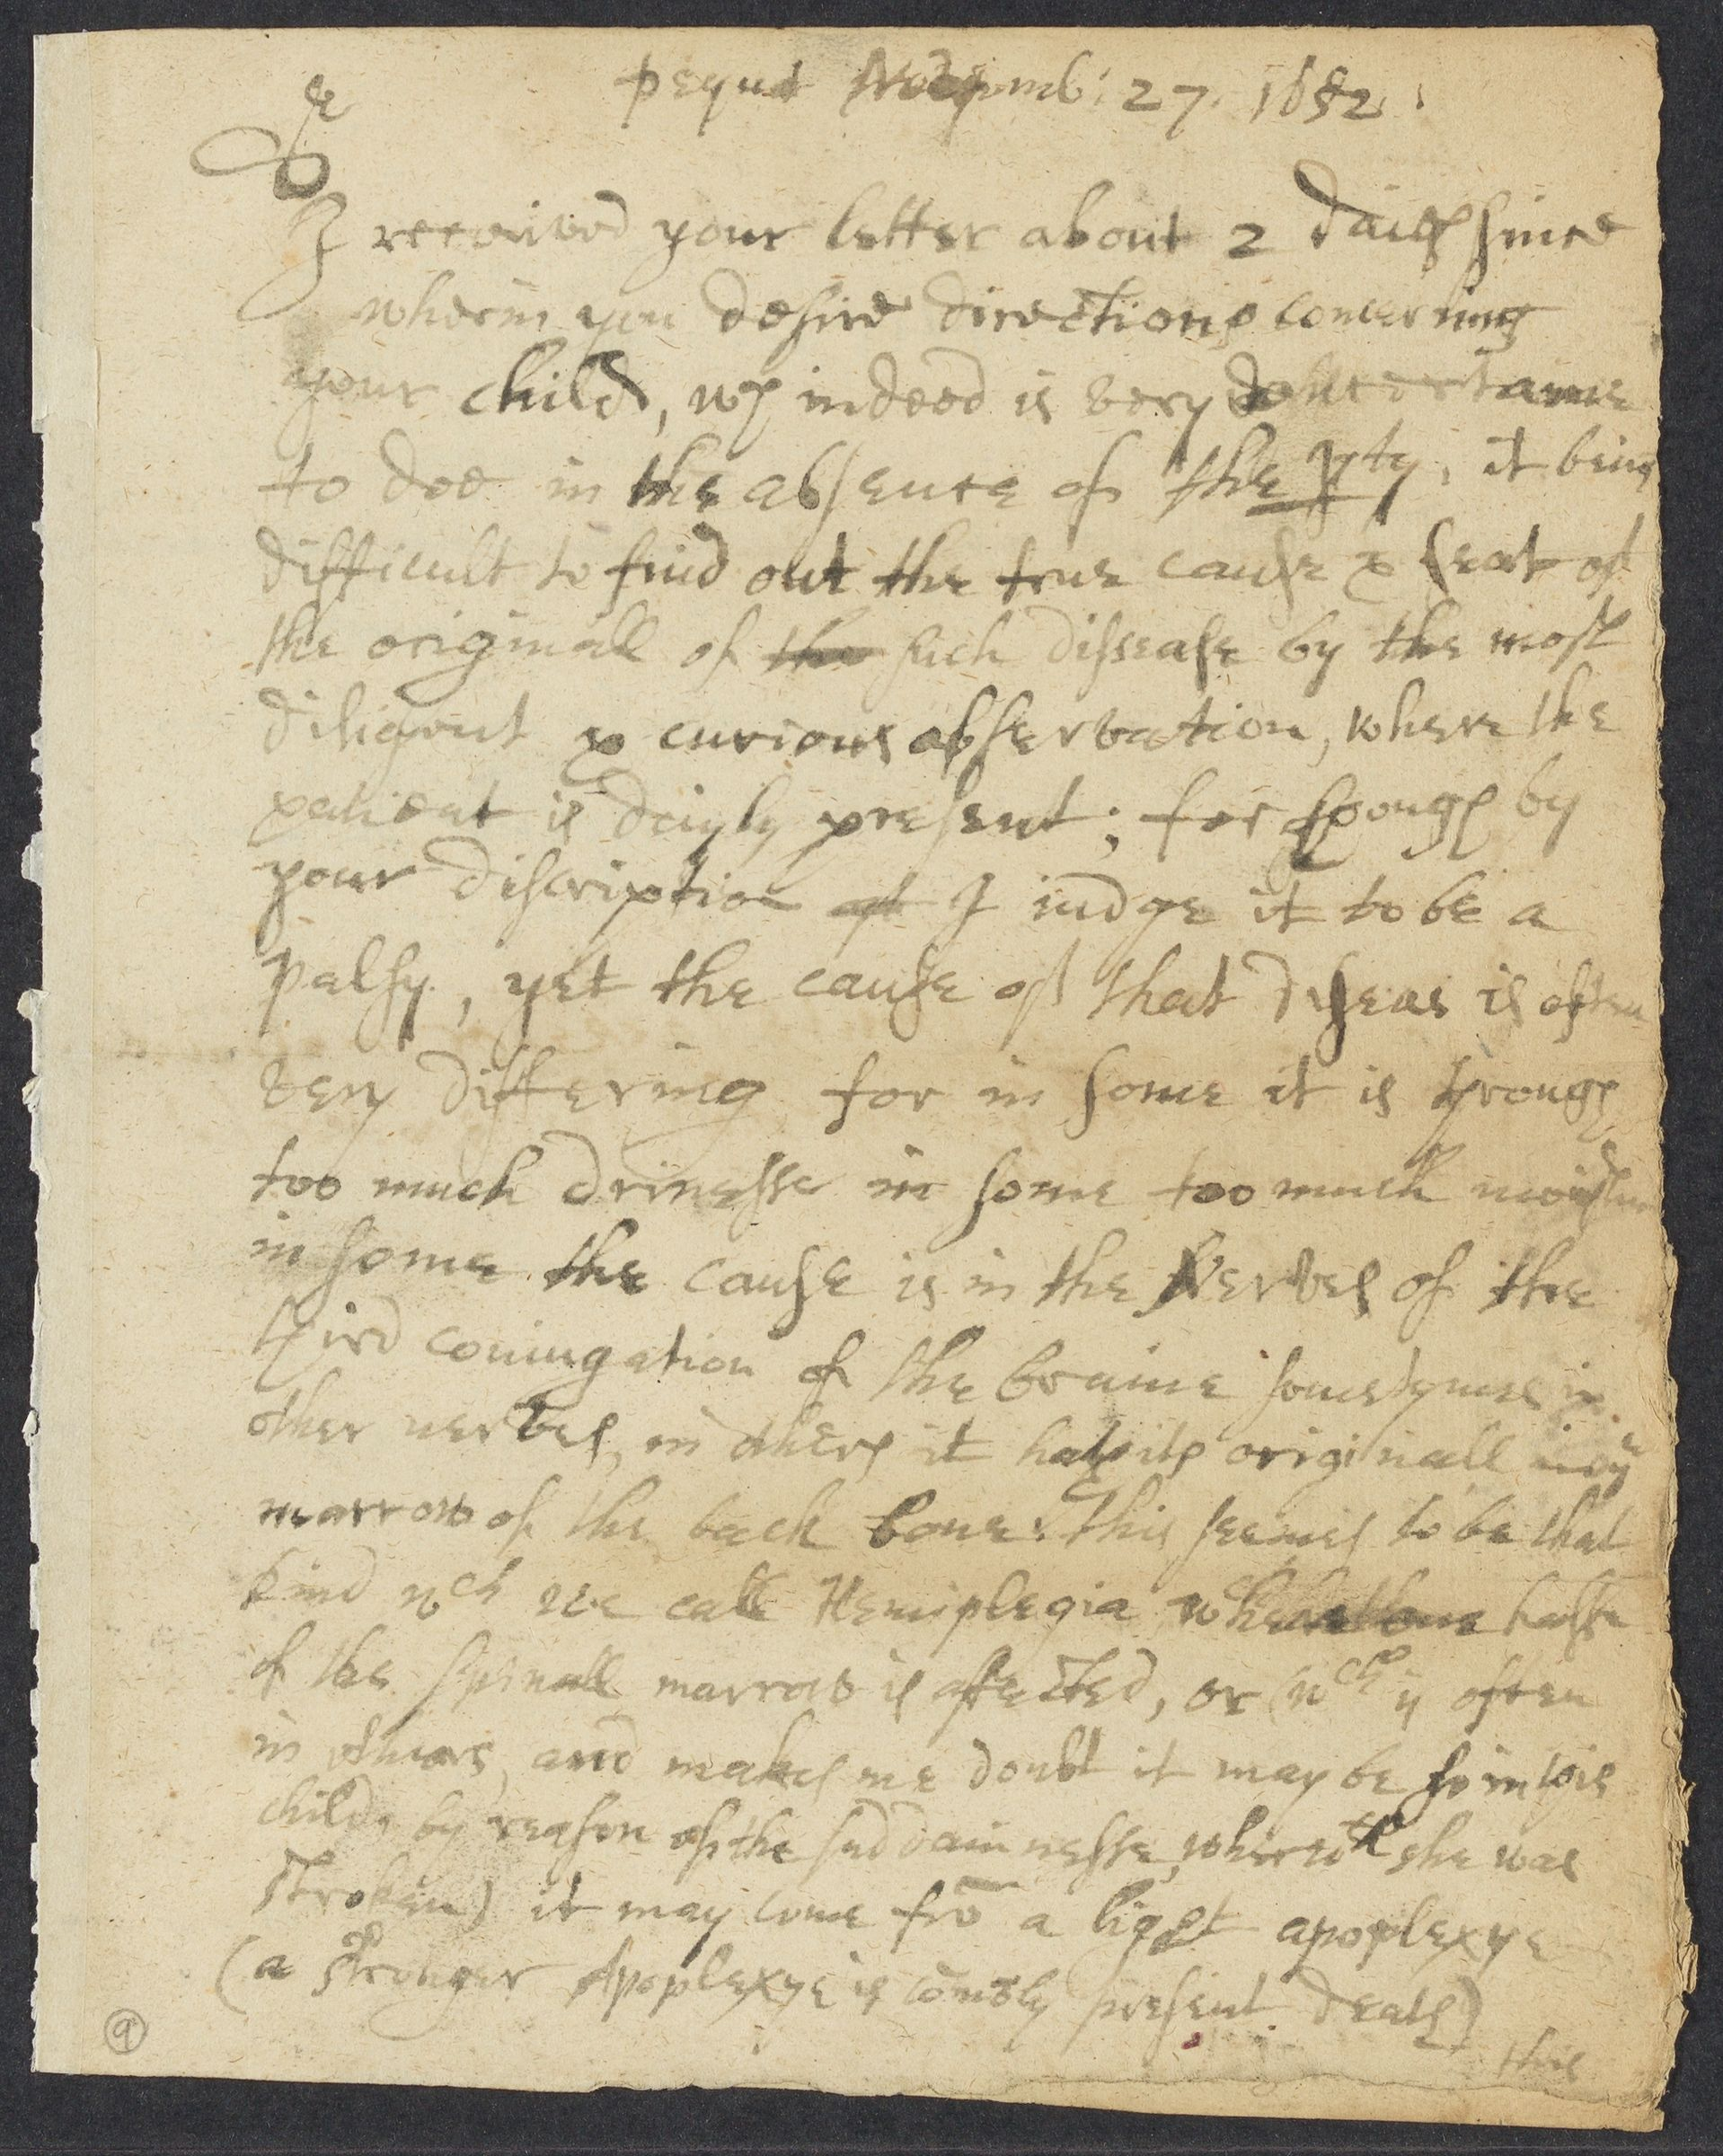 Winthrop, John, 1606-1676, autographed letter signed (copy) to Richard Odell; Pequot, Conn., 1 side (4 pages), 1652 November 27